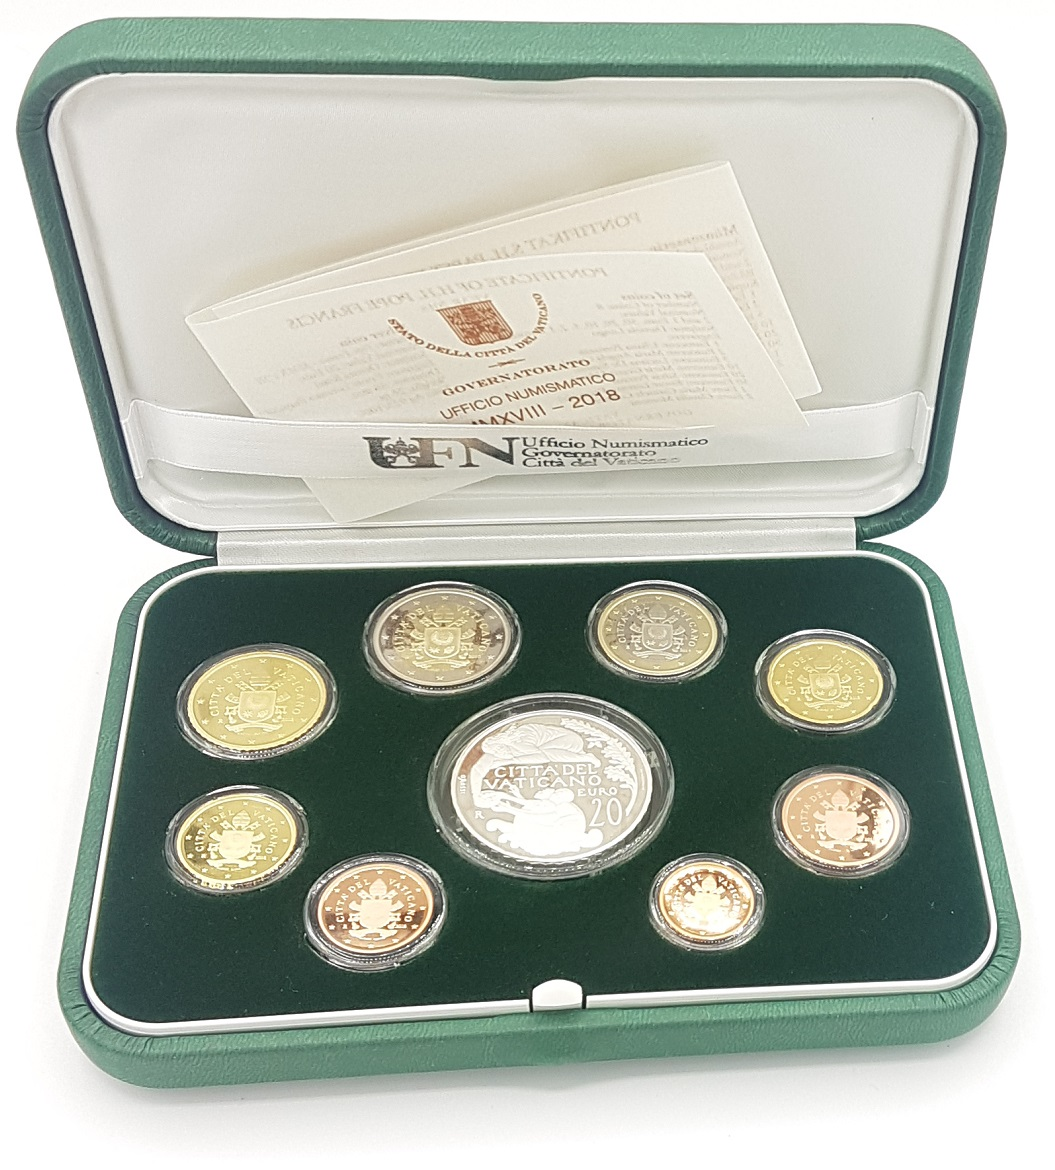 (EUR19.CofBE.2018.CN1429.000000001) Proof coin set Vatican State 2018 (open) (zoom)